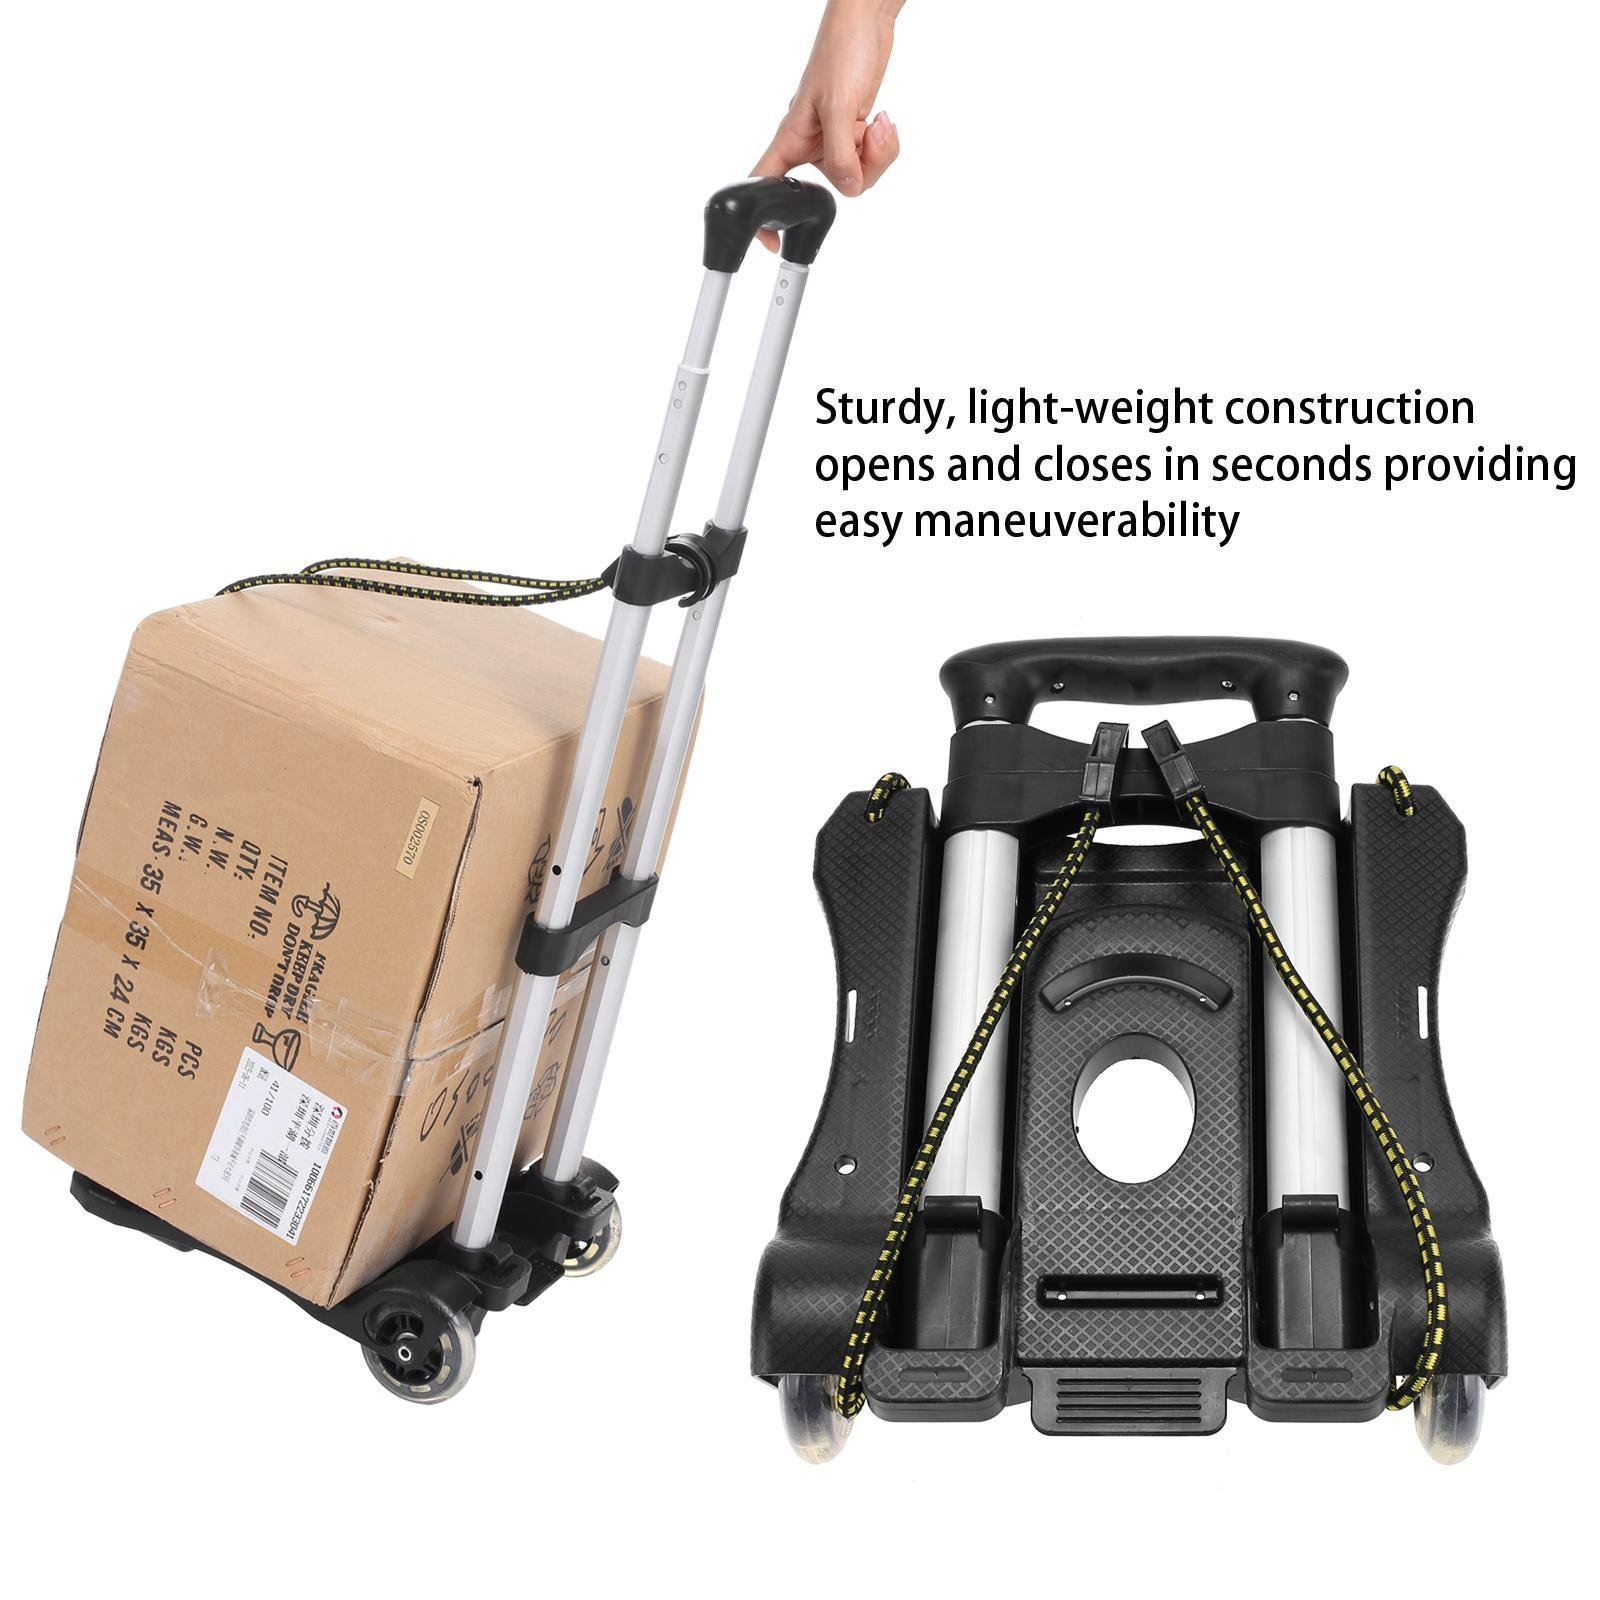 Utheing Black Aluminum Folding Hand Truck Portable Travel Luggage Cart with 2 x Ropes